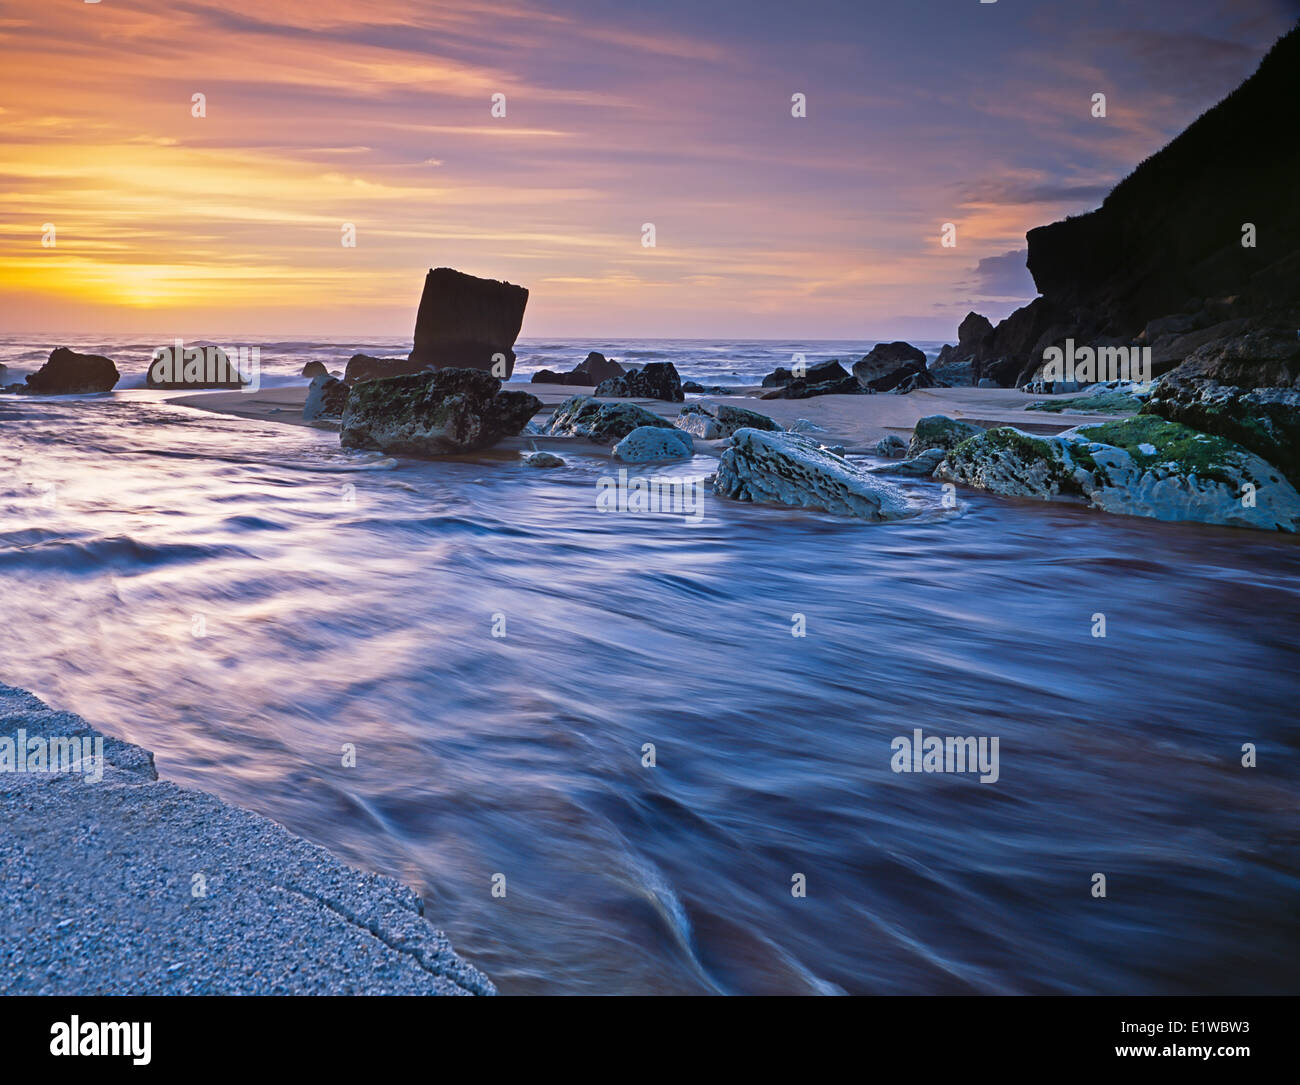 Scotts Beach, Kohaihai River, New Zealand - Stock Image